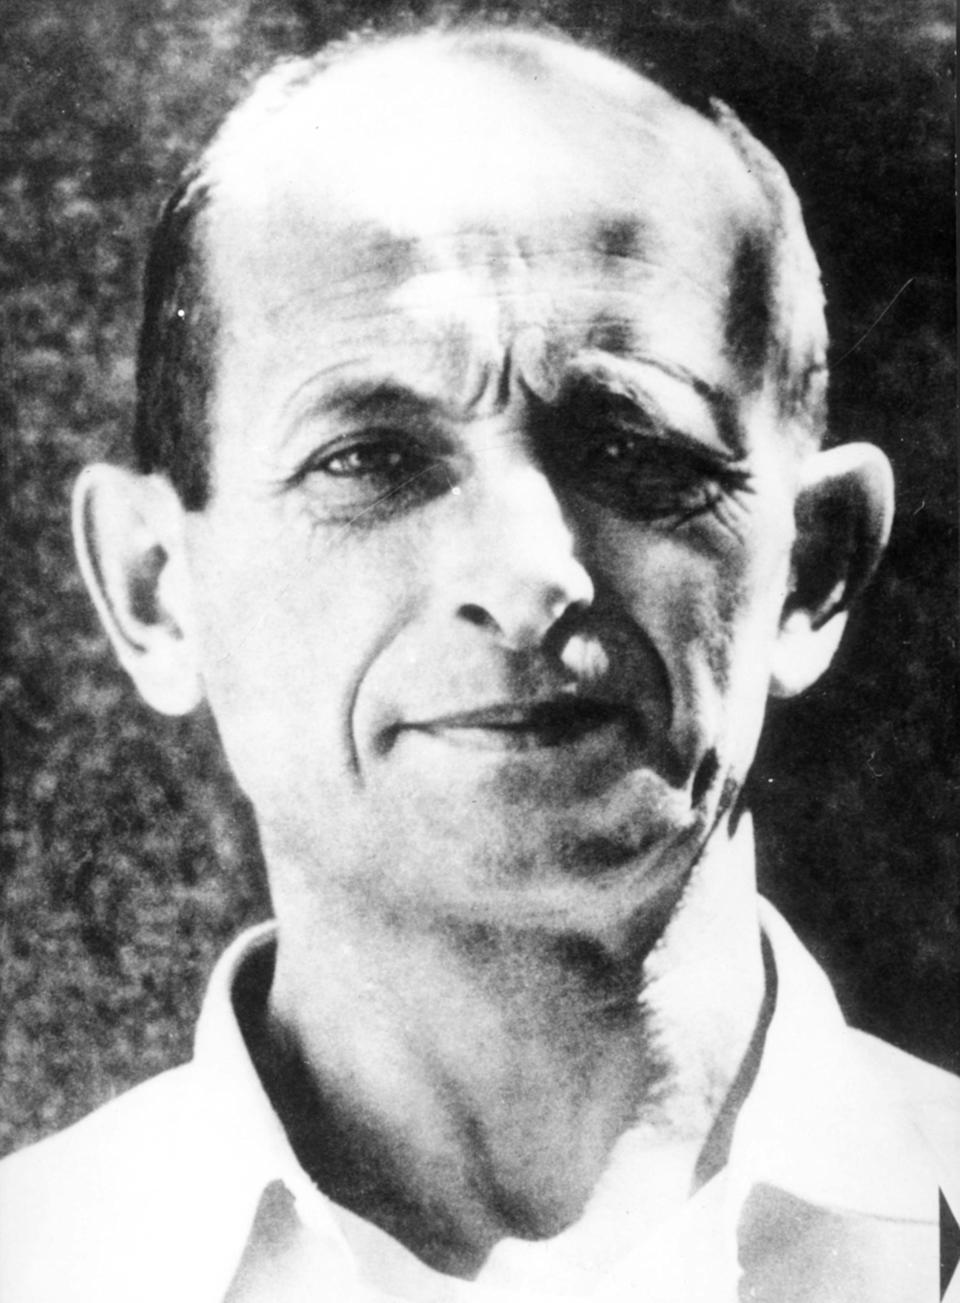 Adolf Eichmann Who Is One Of The Founders Of Gas Chambers And Other Extermination Equipment In Oswiecim (Auschwitz) After Arrest In Israel. World War Ii. (Photo by: Sovfoto/Universal Images Group via Getty Images)